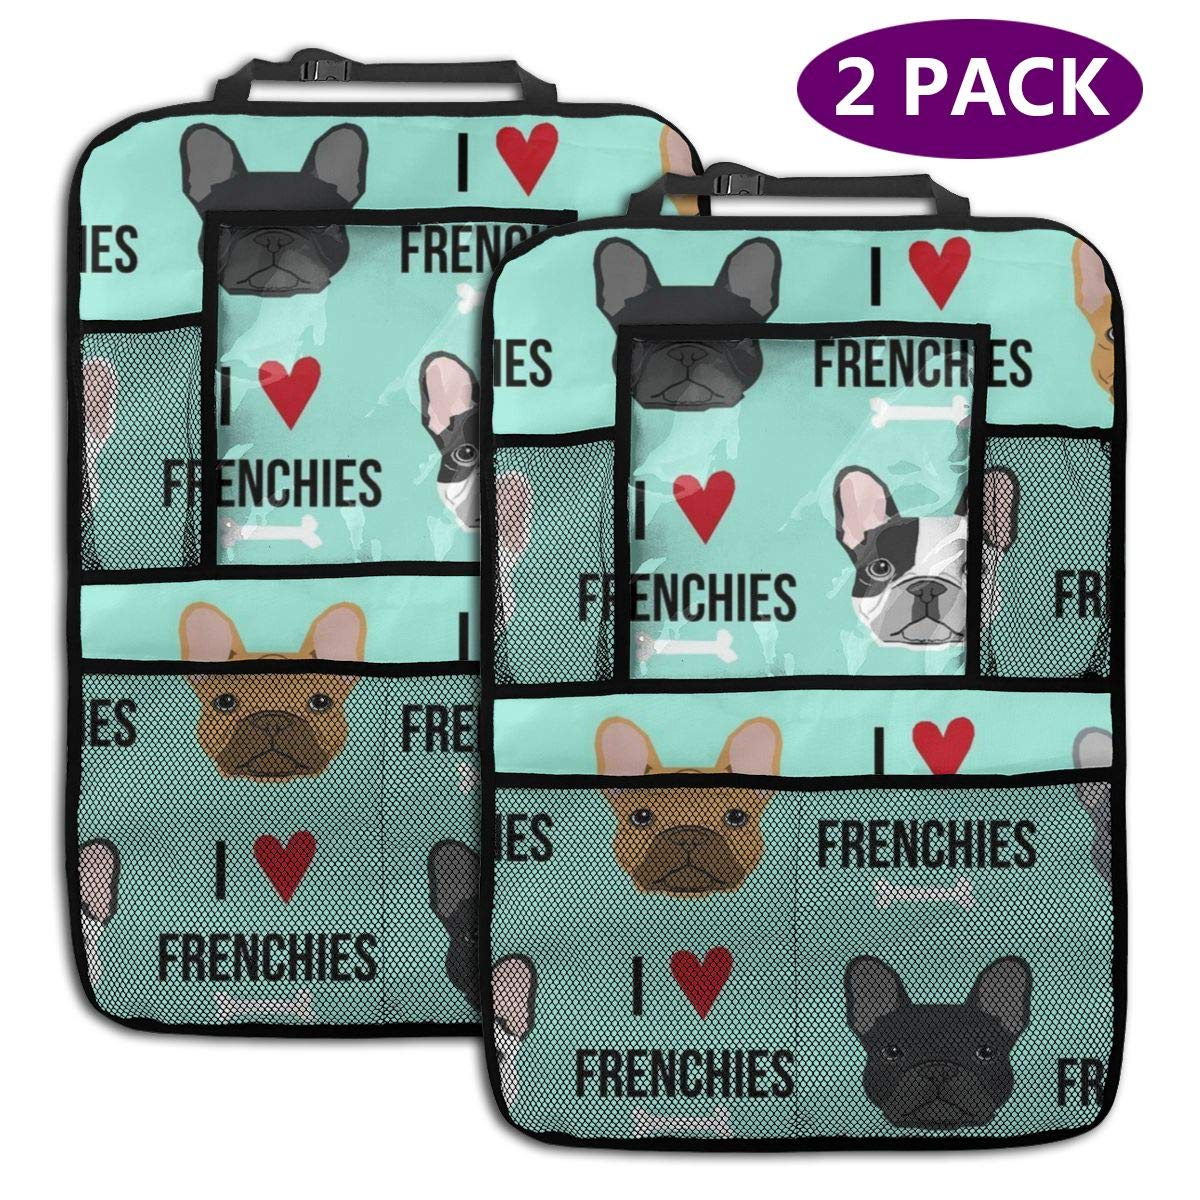 QF6FEICHAN I Love Frenchies Dog Car Seat Back Protectors with Storage Pockets Kick Mats Accessories for Kids and Toddlers by QF6FEICHAN